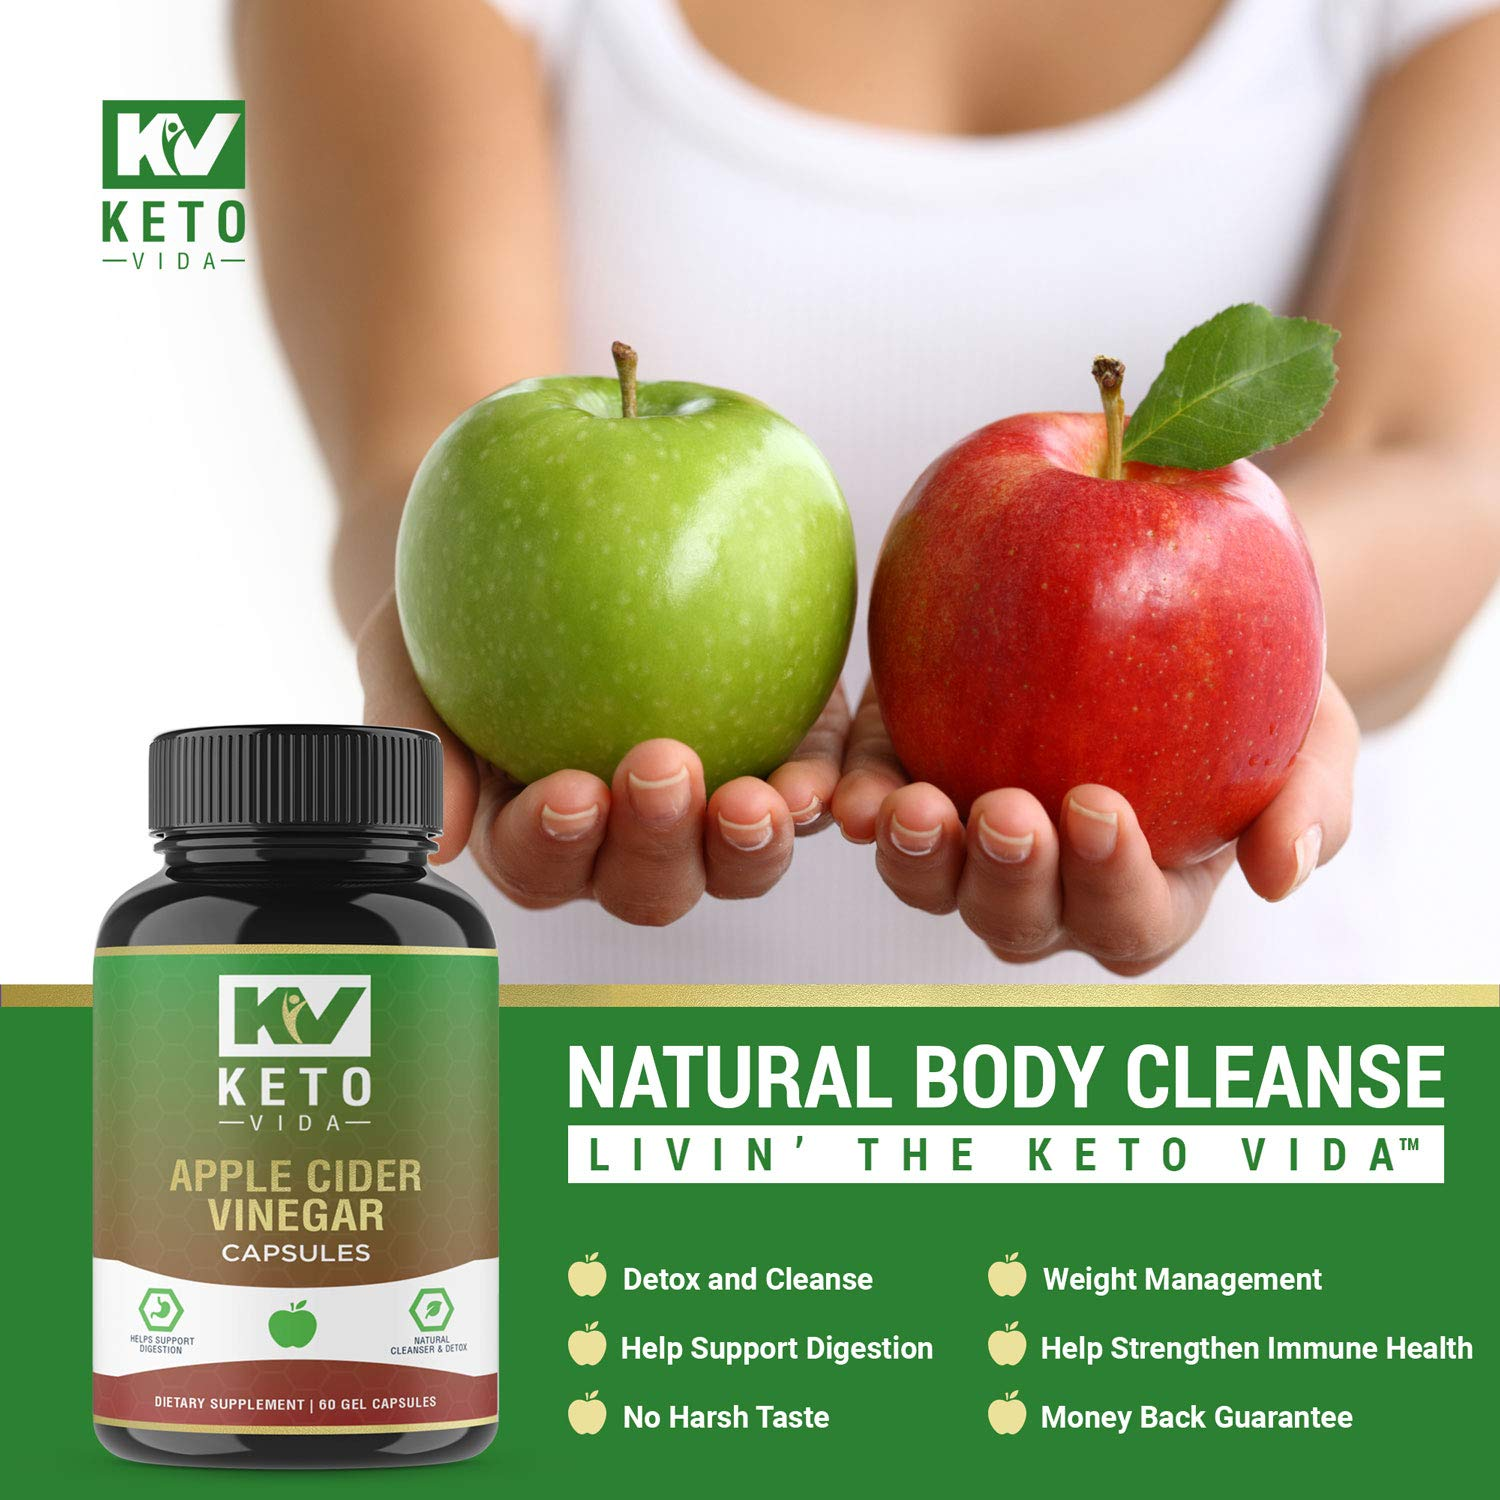 Apple Cider Vinegar Pills - Natural Detox and Weight Loss for Women and Men, Effective Cleanse to Help Digestion and Bloating Relief, Organic Extra Strength ACV Capsules by Keto Vida (Image #5)